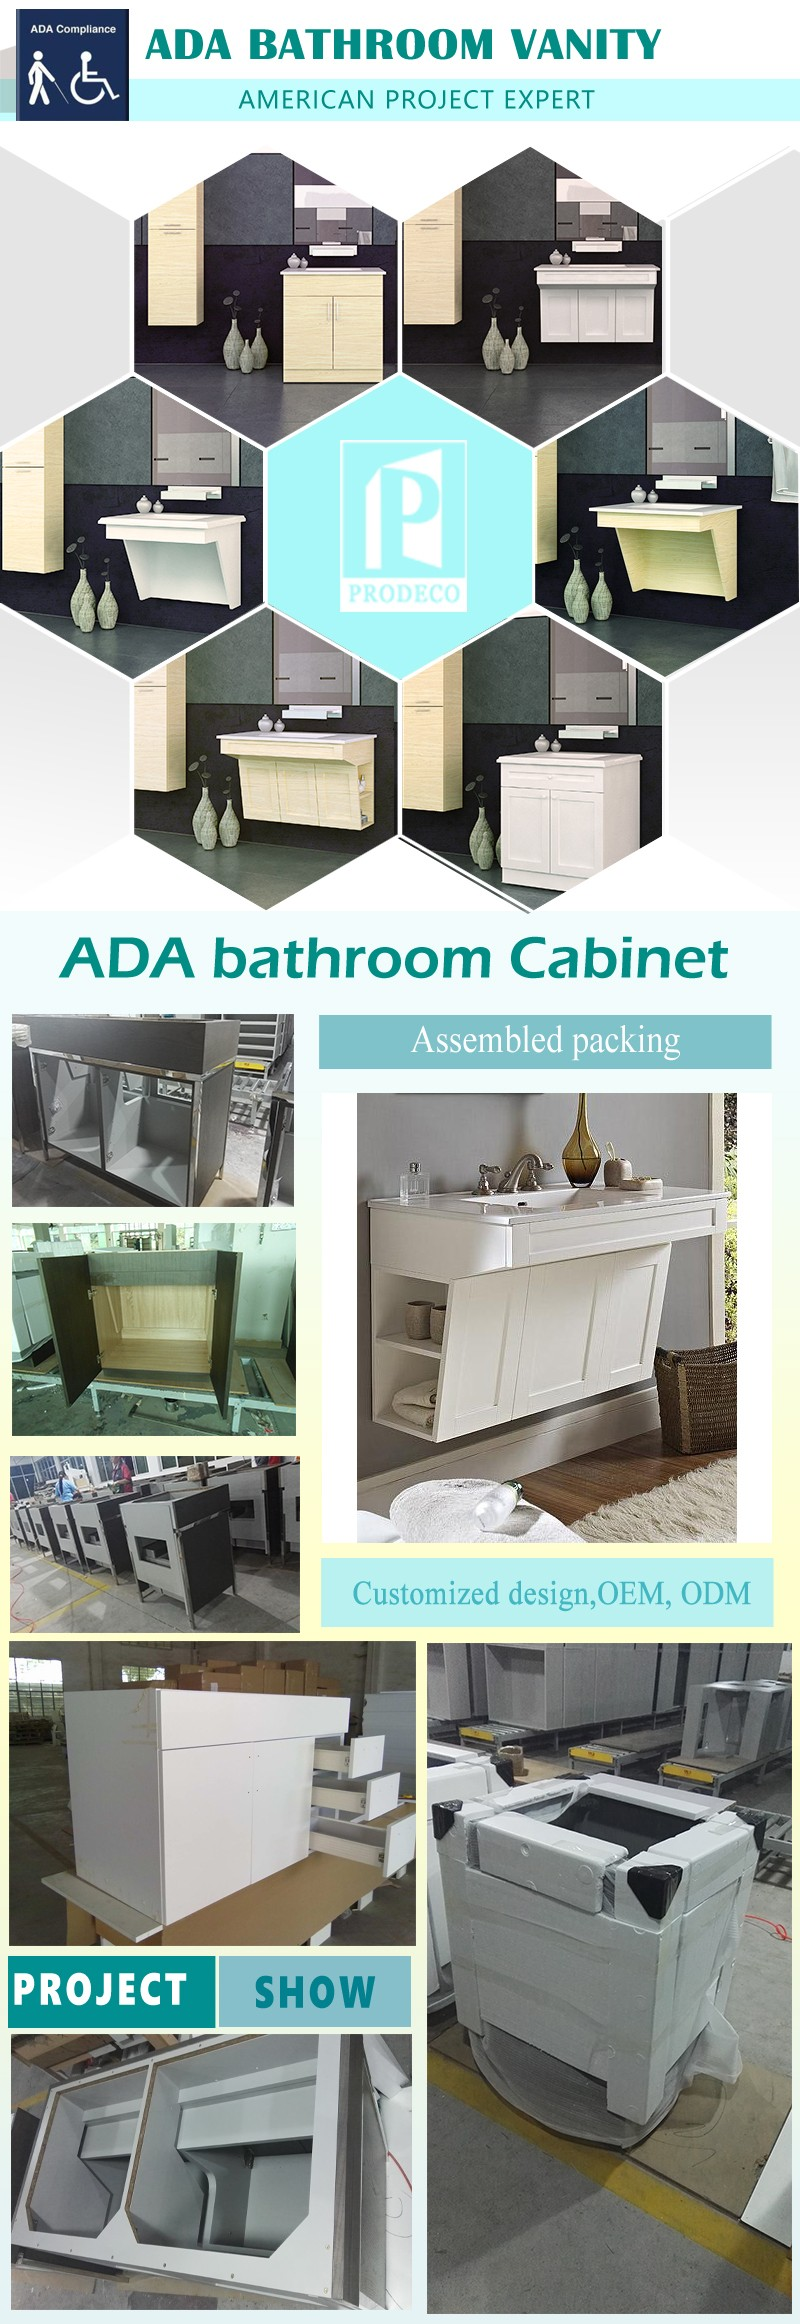 Ada Compliant Bathroom Vanity Cabinet - Buy Vanity ...